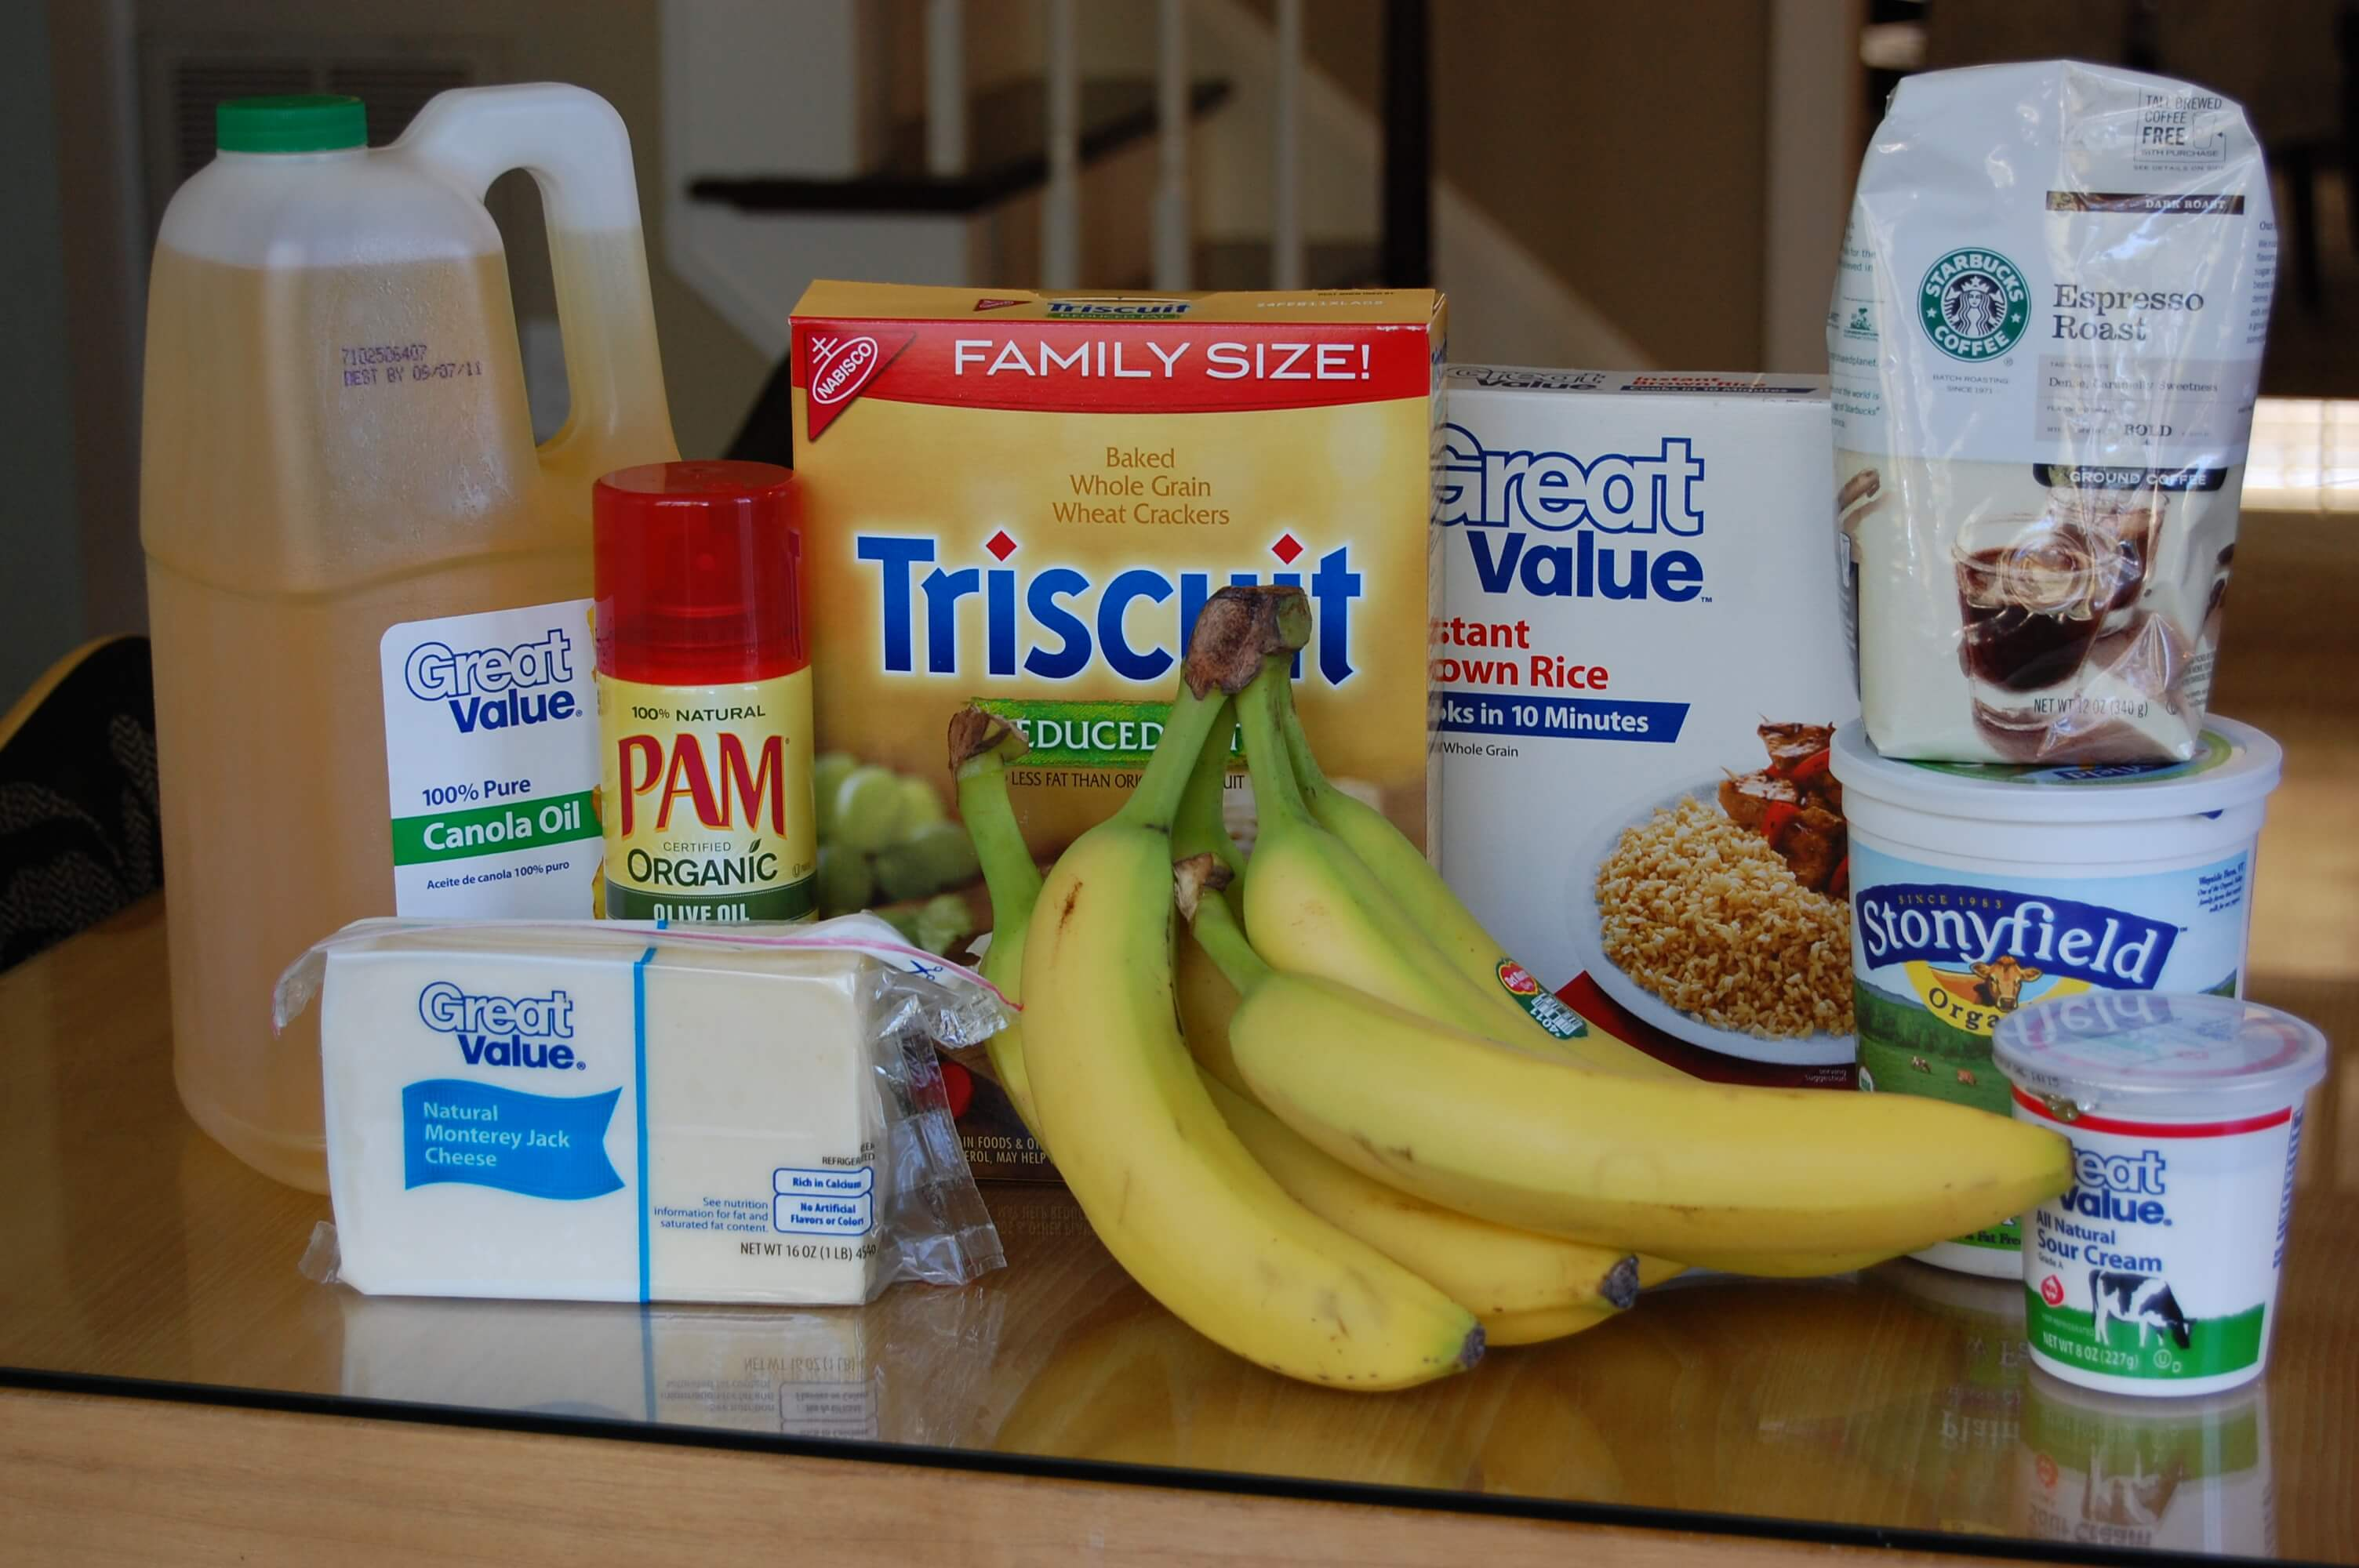 Groceries from Wal-Mart on a table that include coffee, bananas, cheese, Triscuits, brown rice, yogurt, sour cream, and cooking oil.